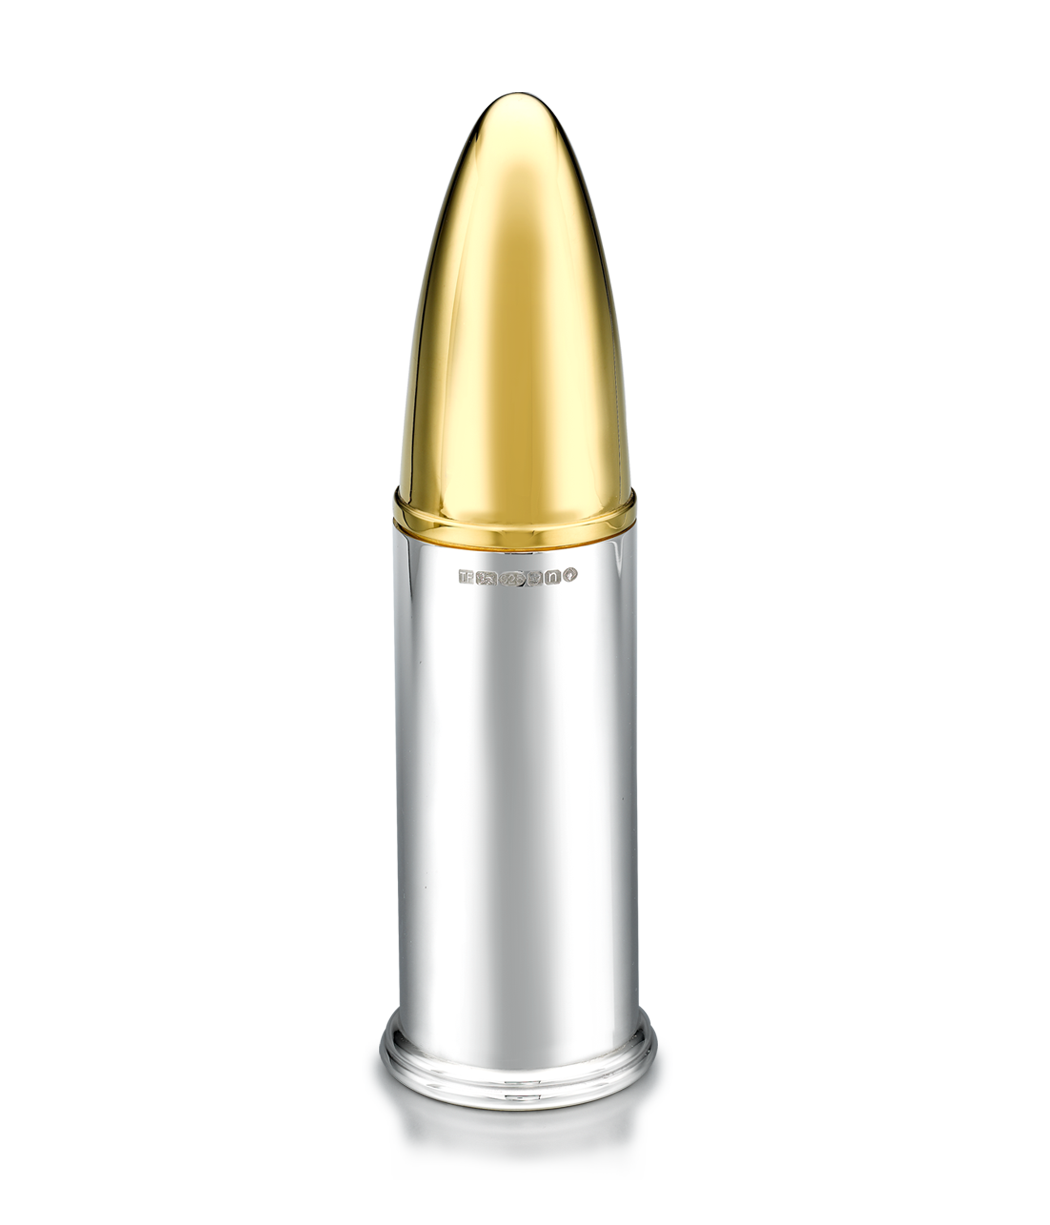 M16 bullet png. Weapons images with transparent